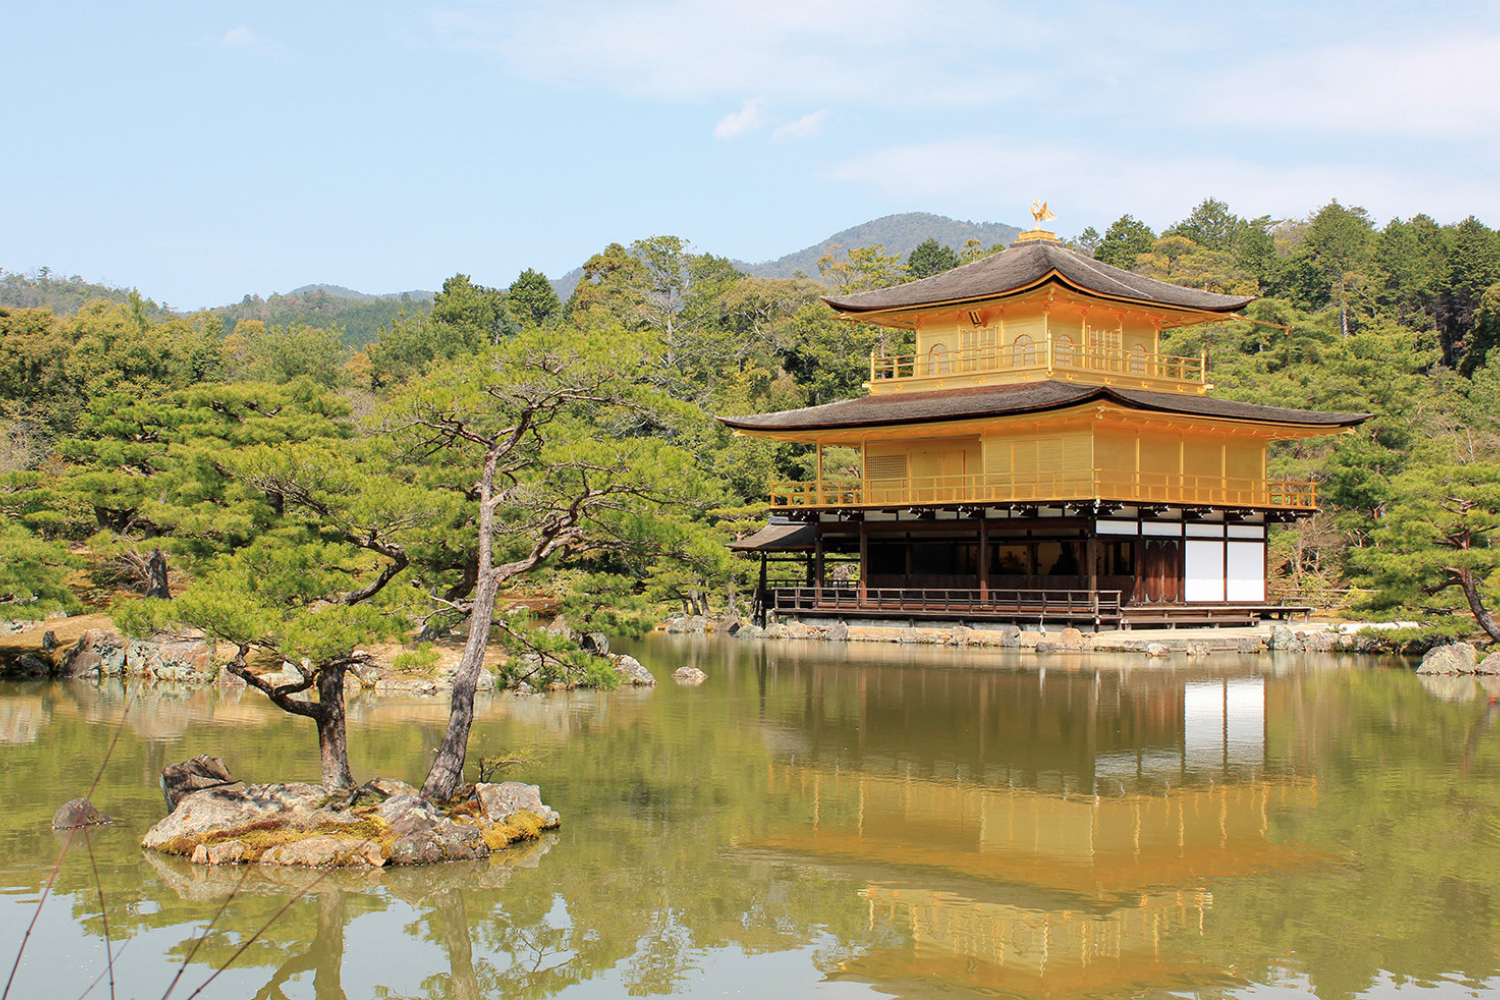 Japan_Golden_Temple_Kyoto.jpg